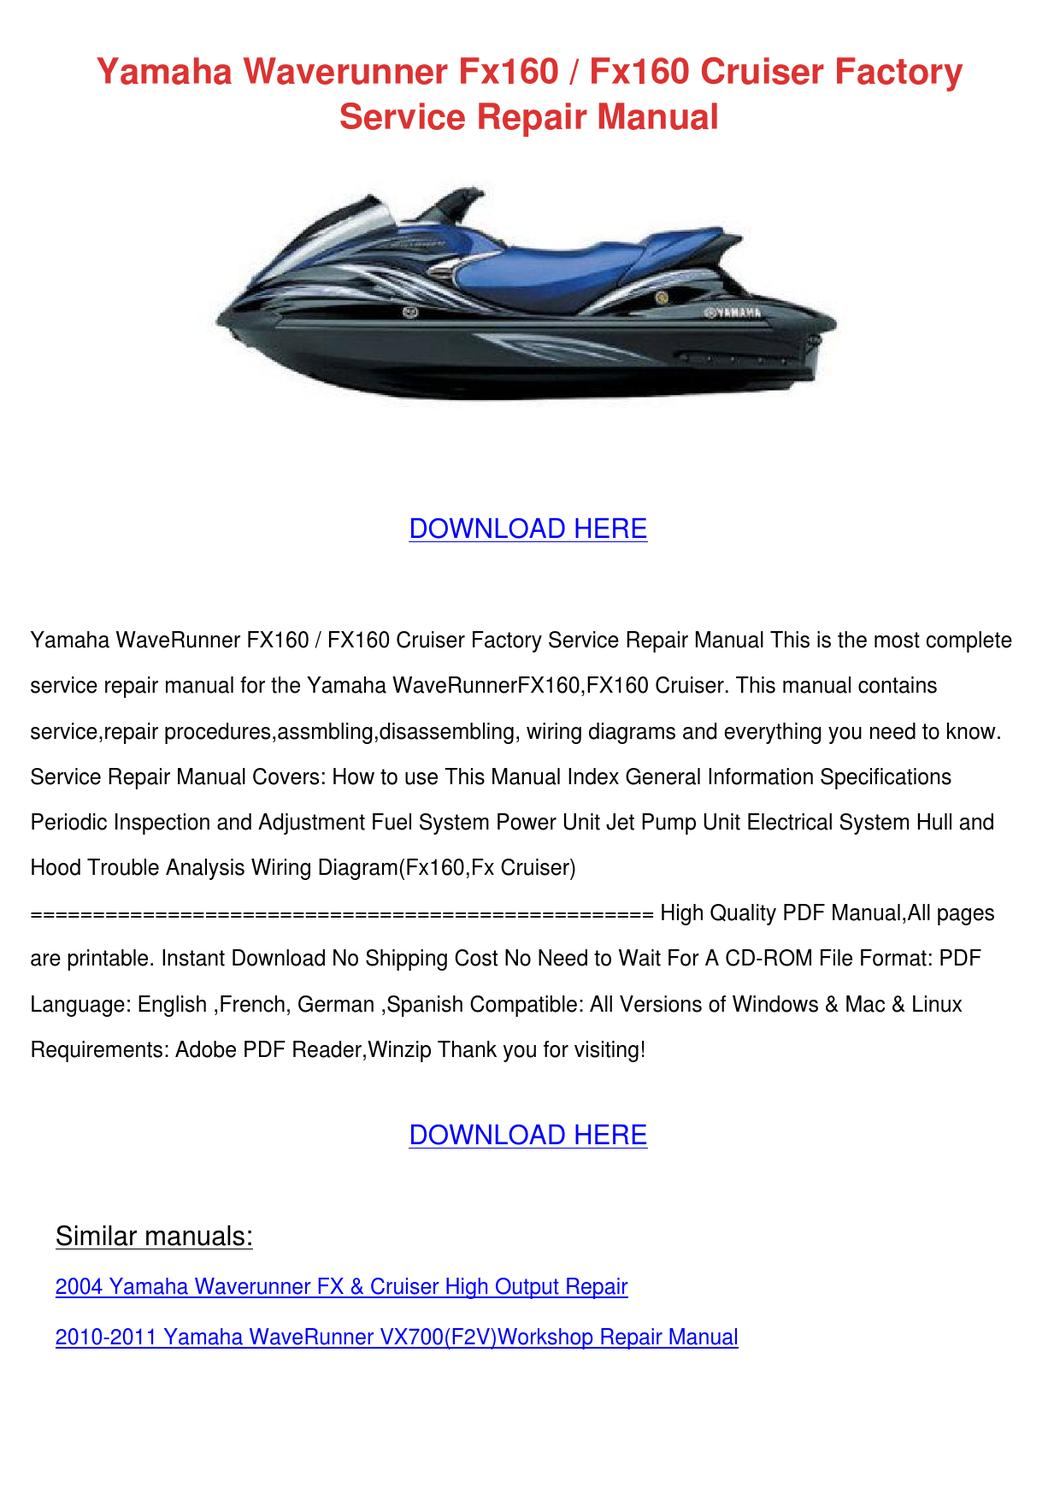 Yamaha Suv Waverunner Wiring Diagram Trusted Diagrams Viking Fx160 Cruiser Factory By Moniqueneeley Issuu